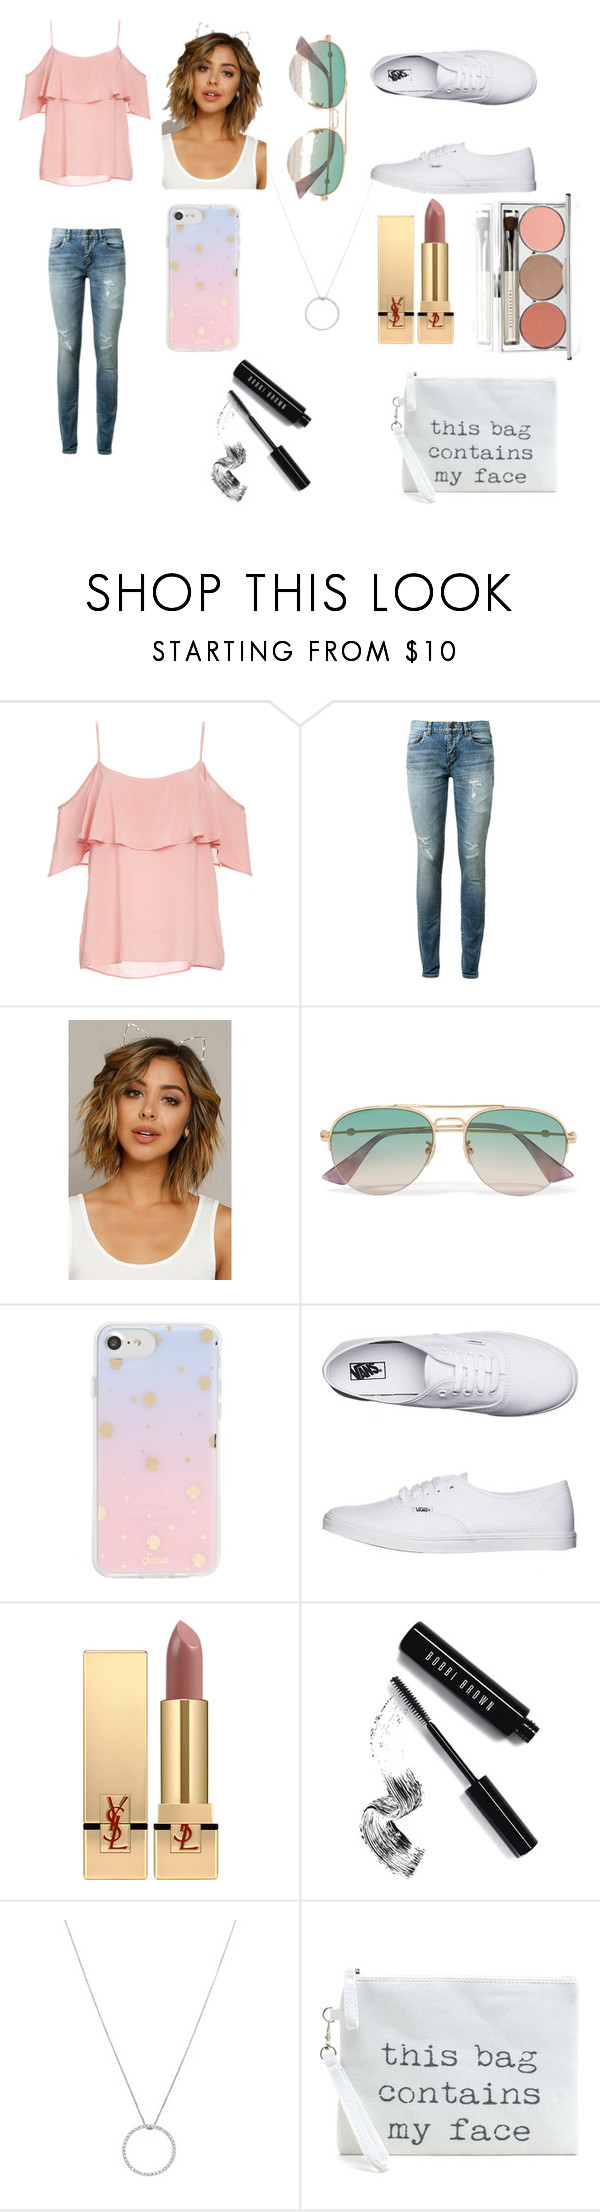 """Untitled #14"" by nightmare-sans on Polyvore featuring BB Dakota, Yves Saint Laurent, Gucci, Sonix, Vans, Bobbi Brown Cosmetics, Roberto Coin and Chantecaille"